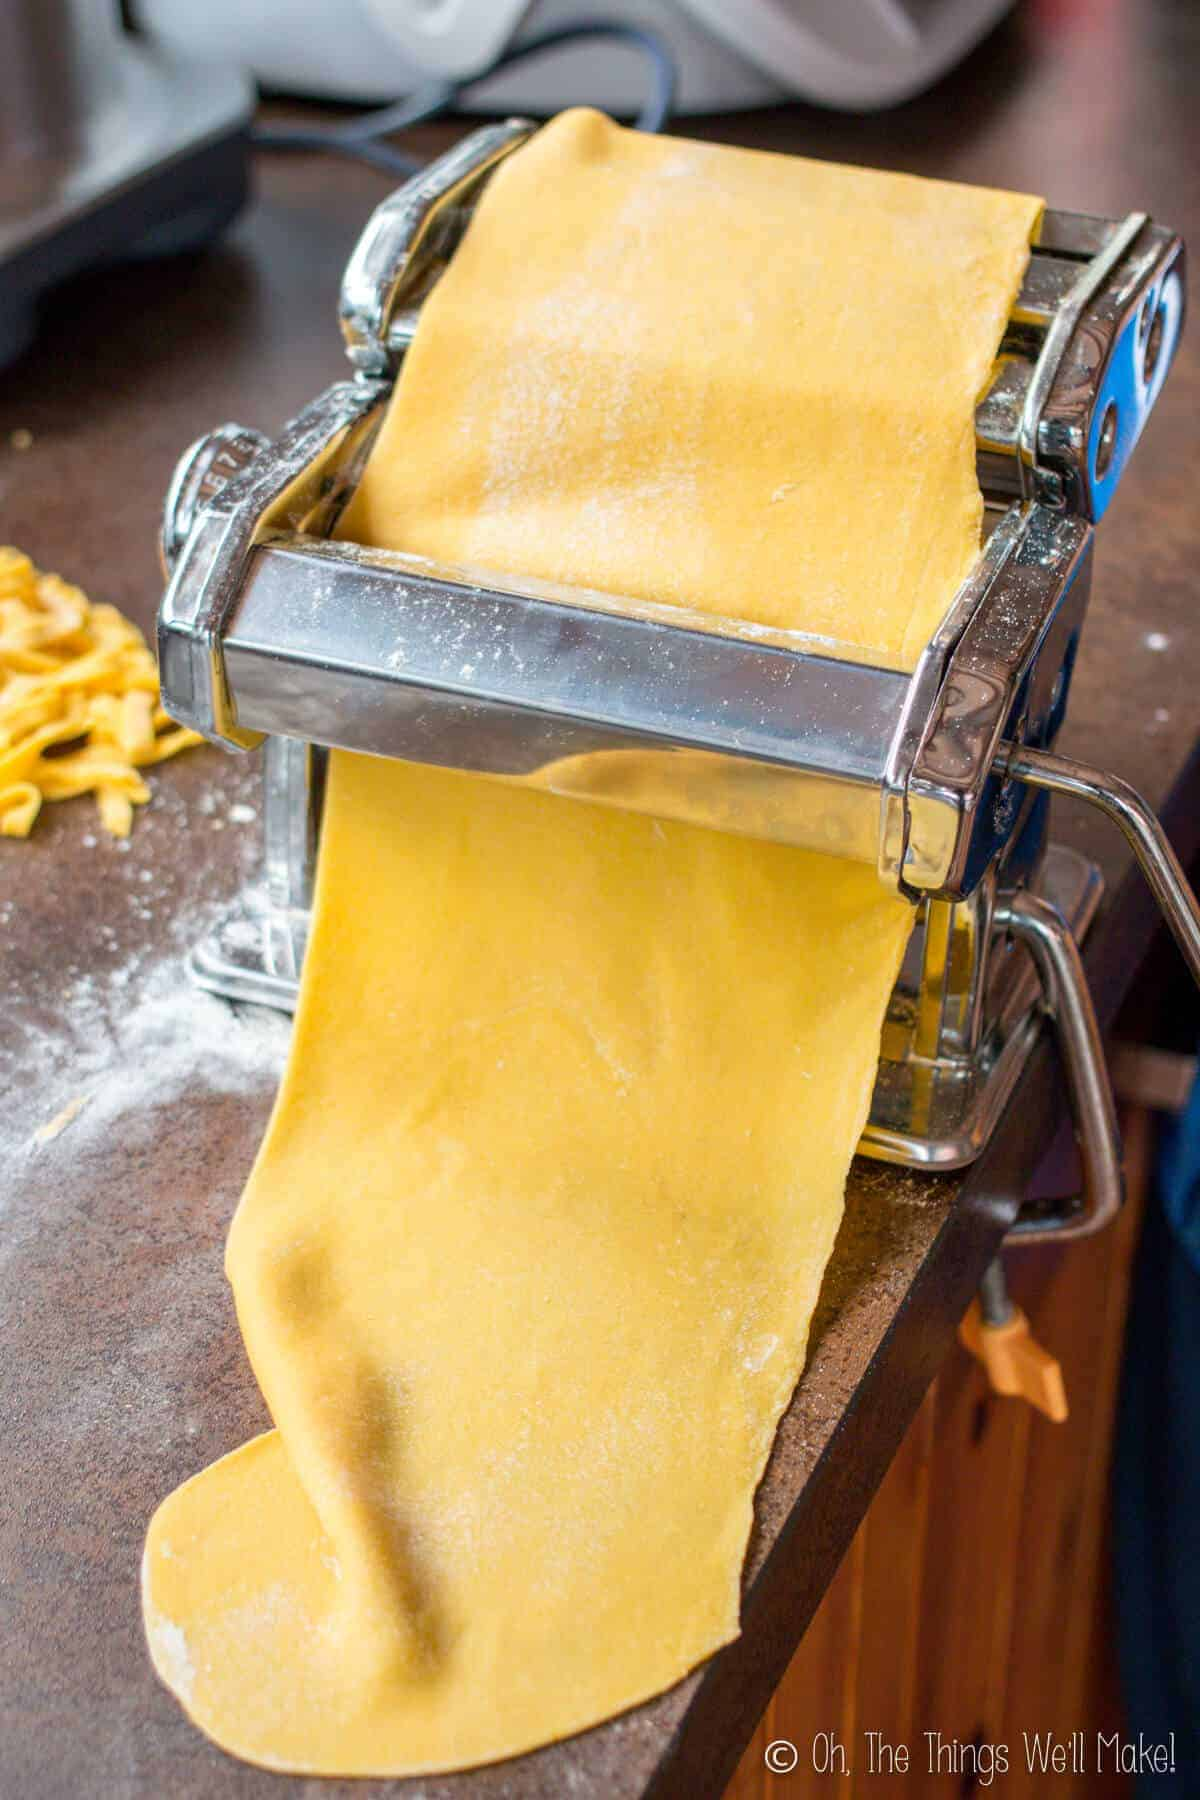 Running the pasta through a pasta maker to help flatten it out and make think sheets ready for cutting into fettuccine.